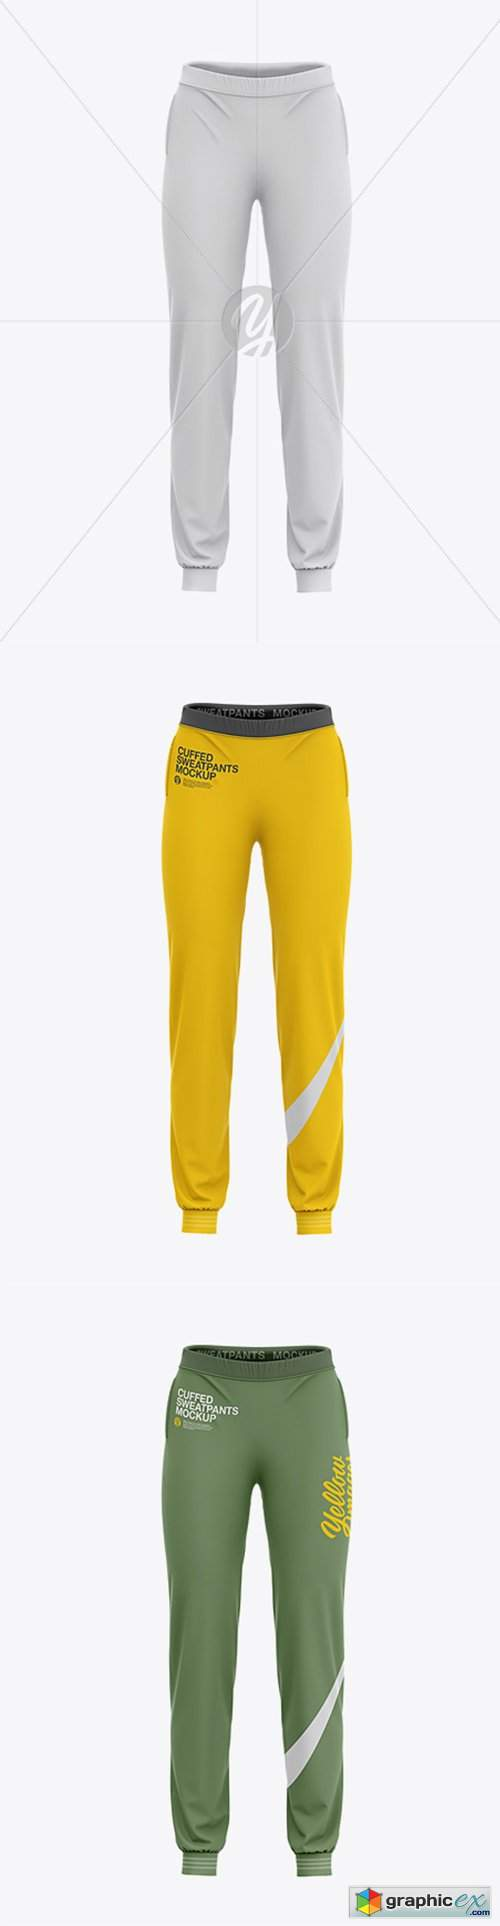 Women's Cuffed Sweatpants Mockup - Front View